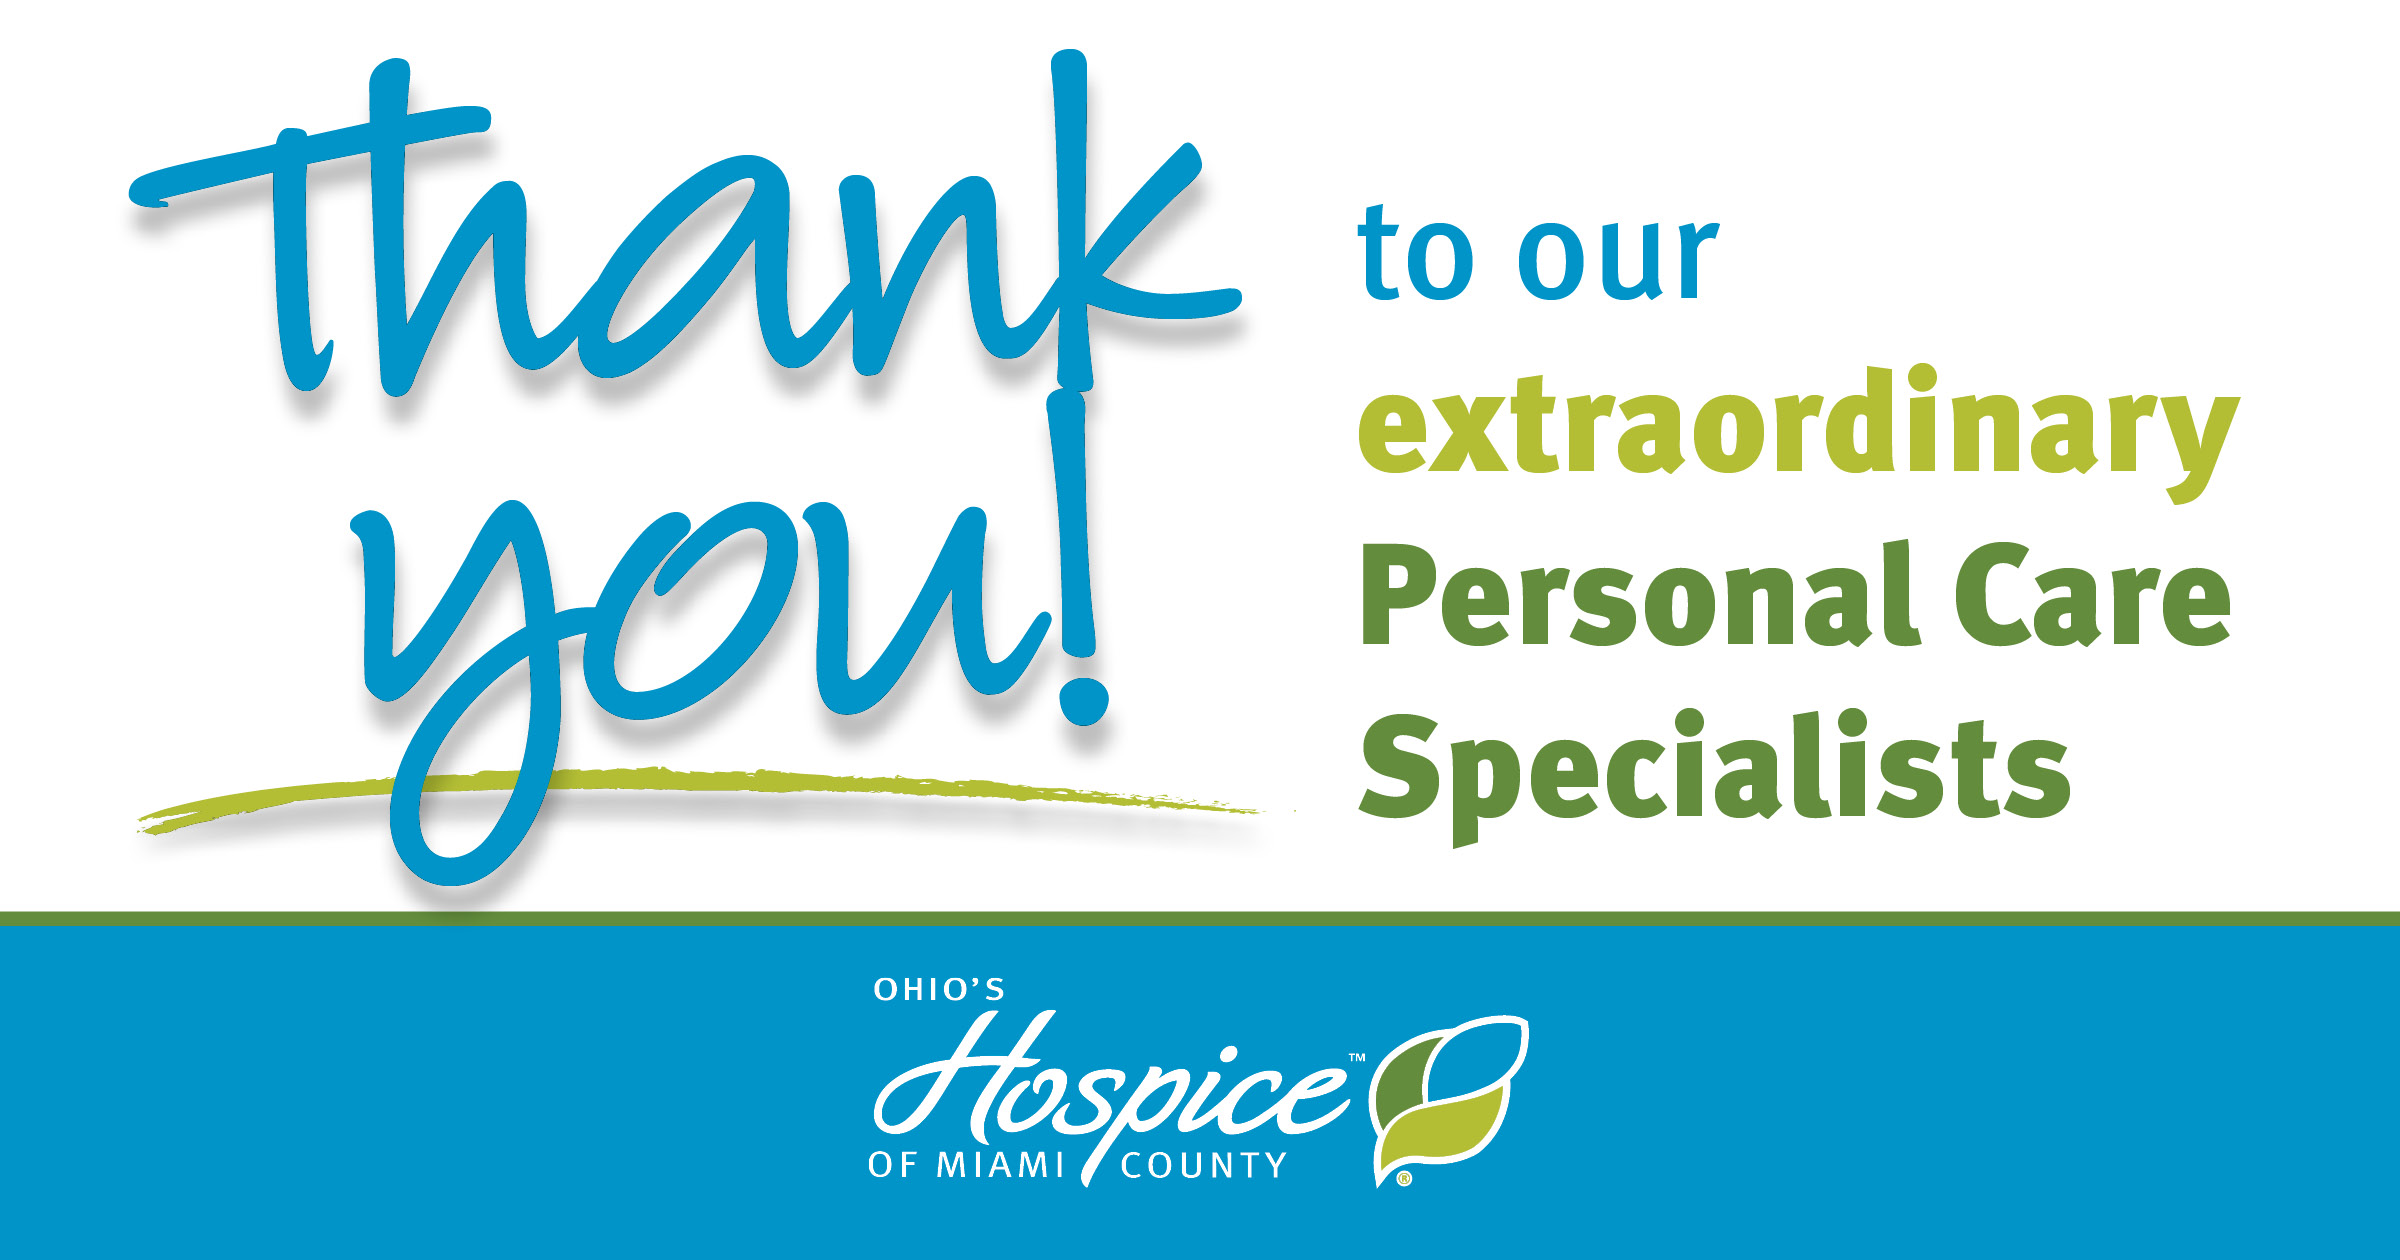 Personal Care Specialists Serve Patients And Families With Compassion, Kindness And Honesty